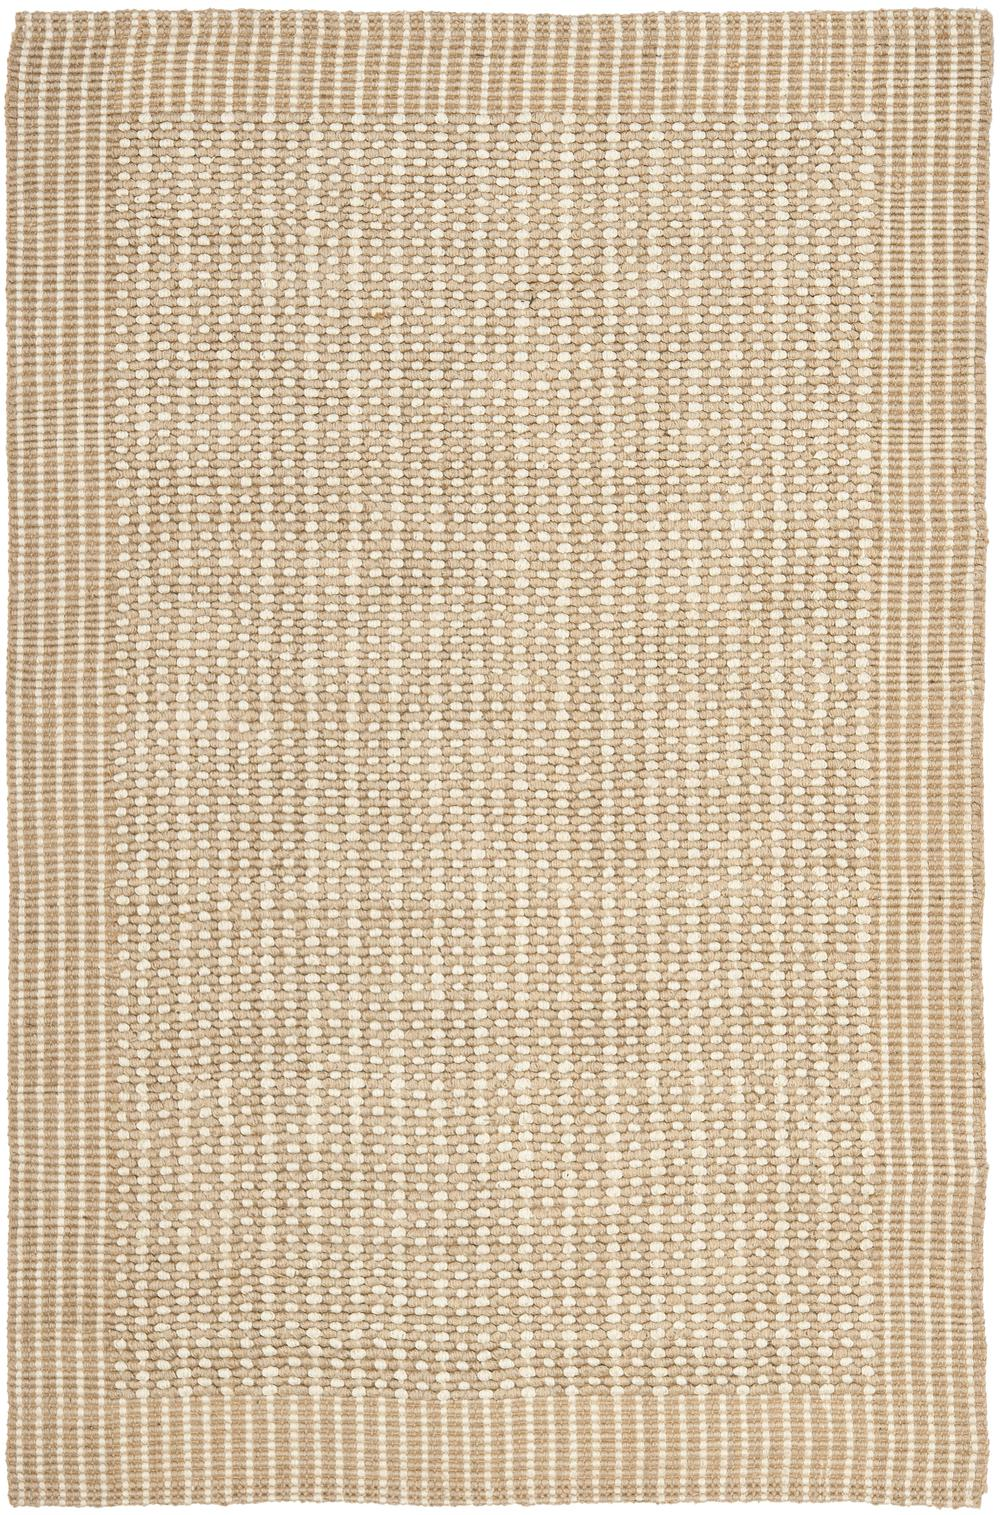 Safavieh Natural Fiber Nf449a Ivory And Beige Area Rug